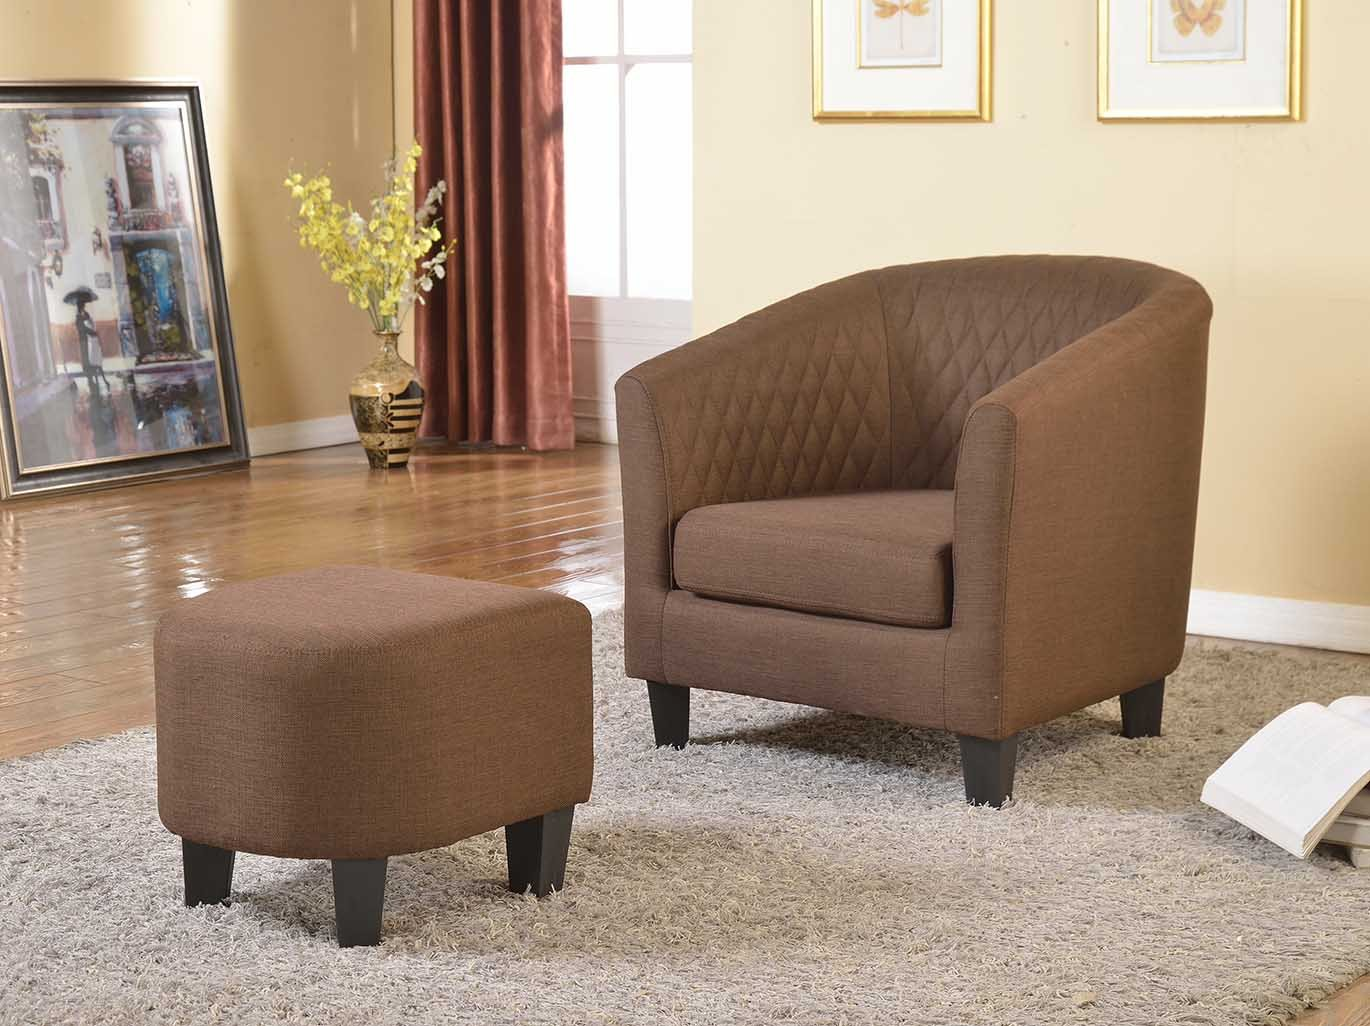 Amazon com us pride furniture isabella fabric accent chair and ottoman 28 5 x 30 x 29 17 x 17 x 15 5 brown kitchen dining